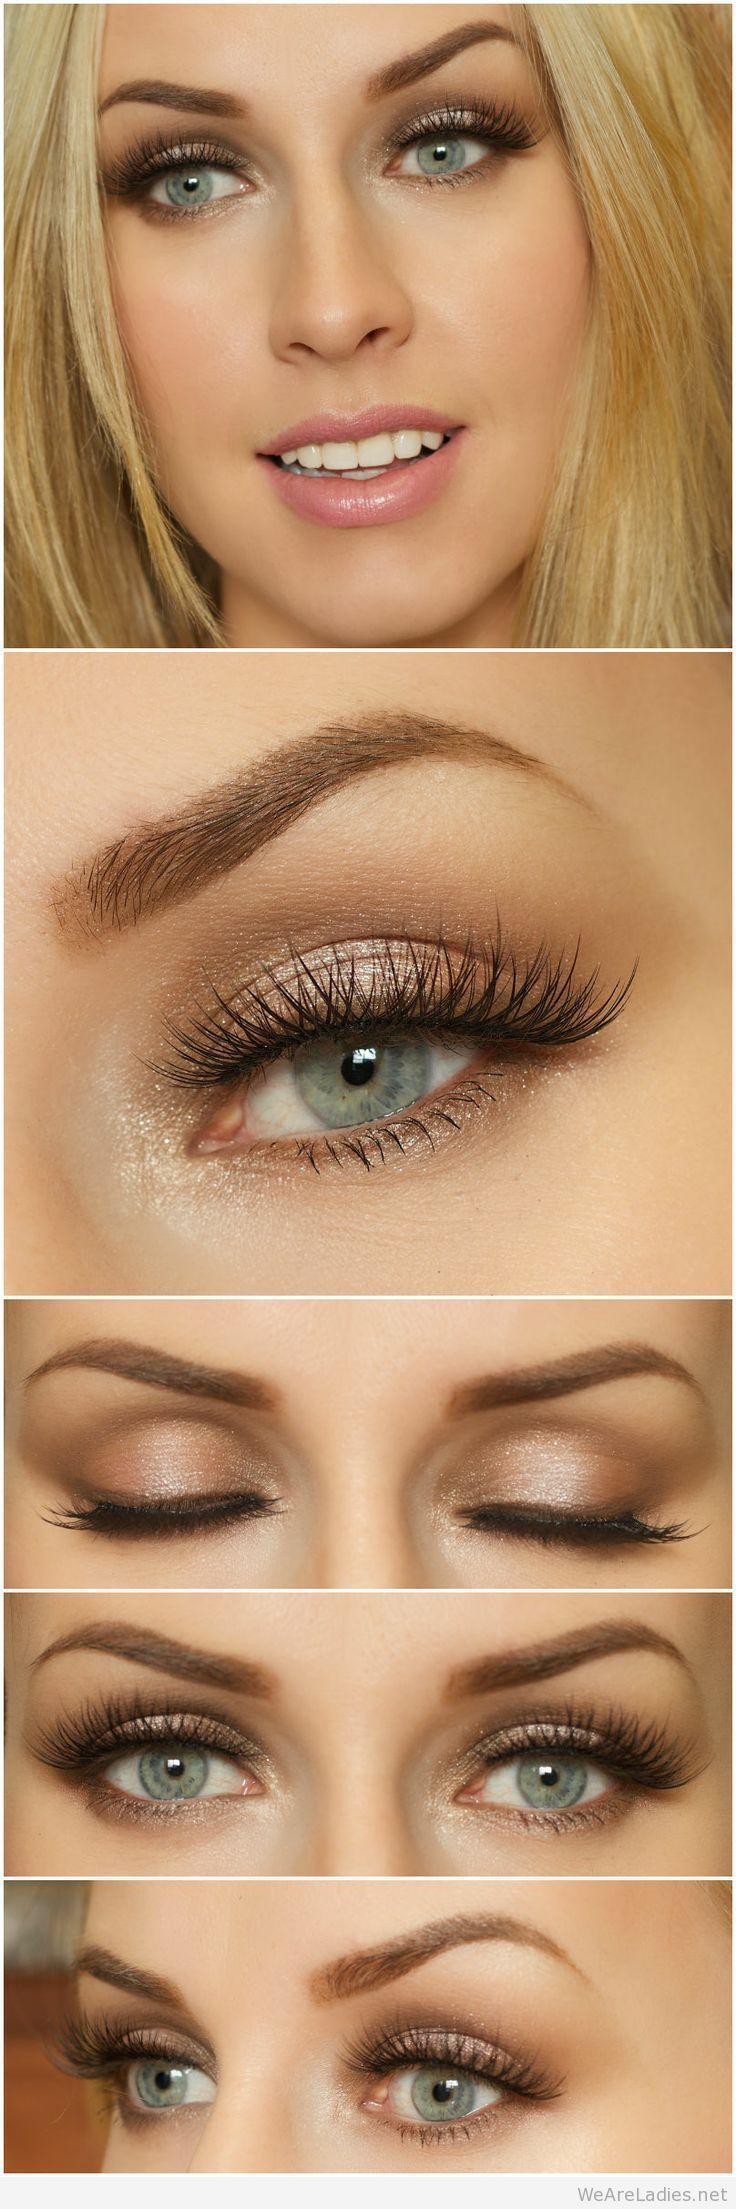 25+ best ideas about Makeup for blondes on Pinterest